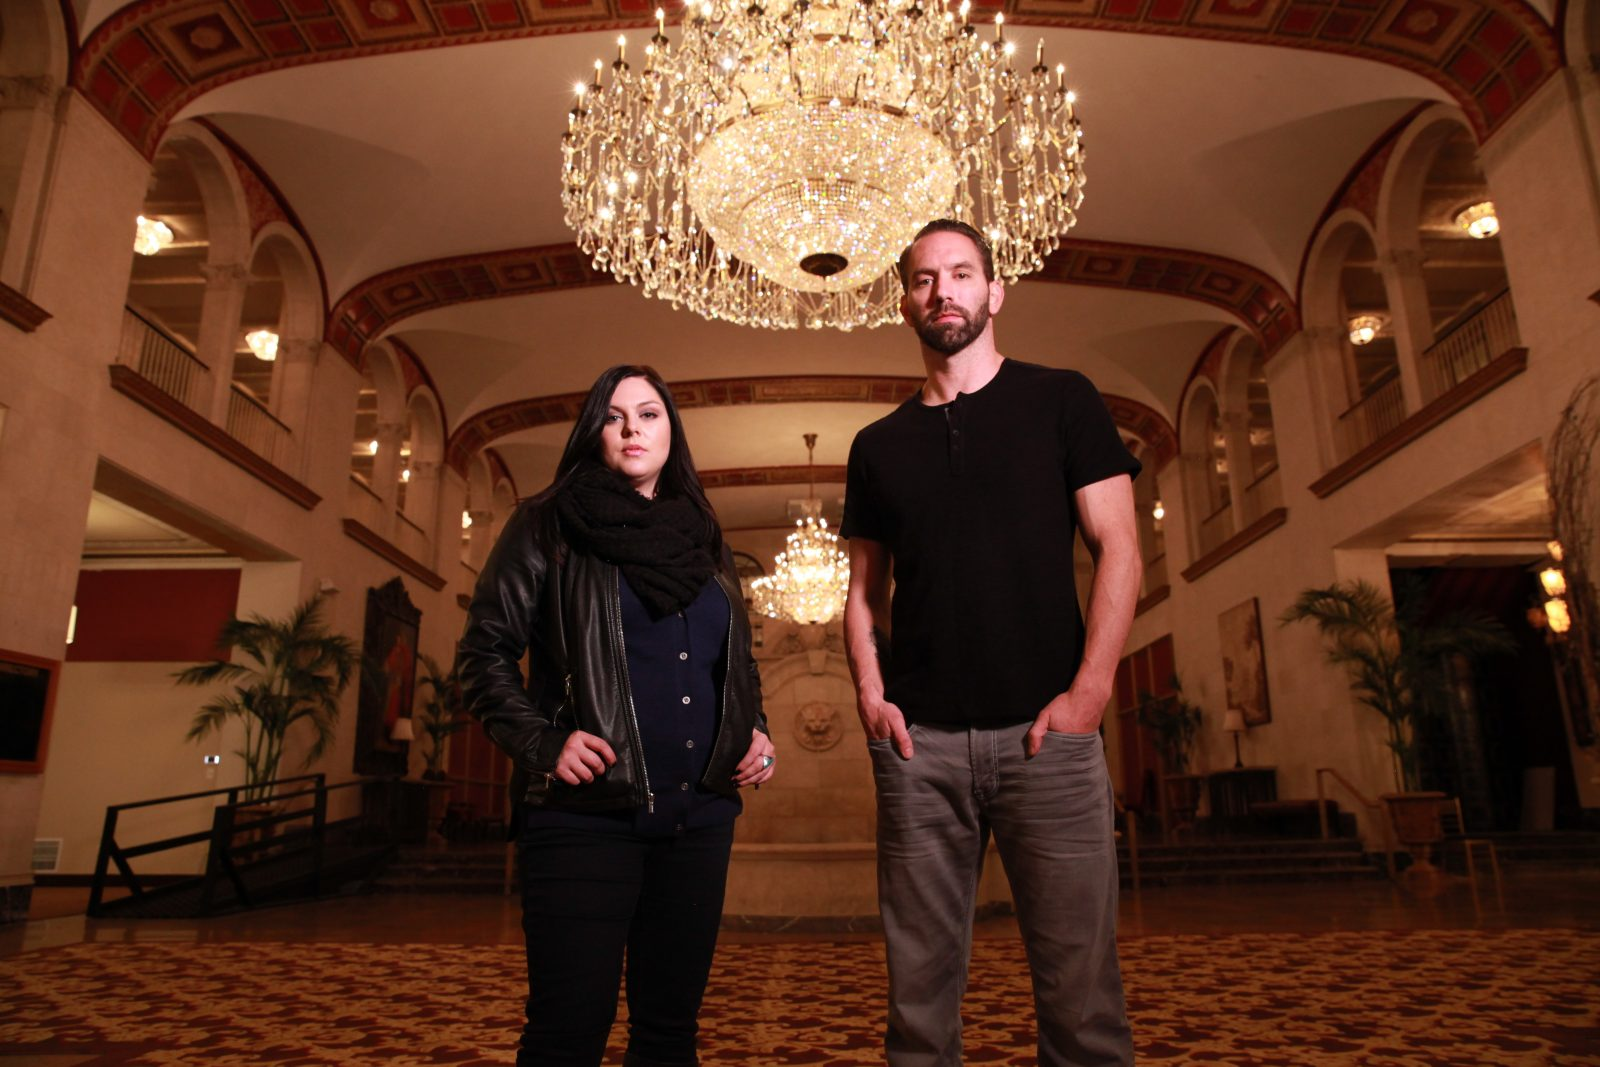 Hosts Katrina Weidman and Nick Groff stand in the lobby of Statler City. (Photo courtesy of TLC)